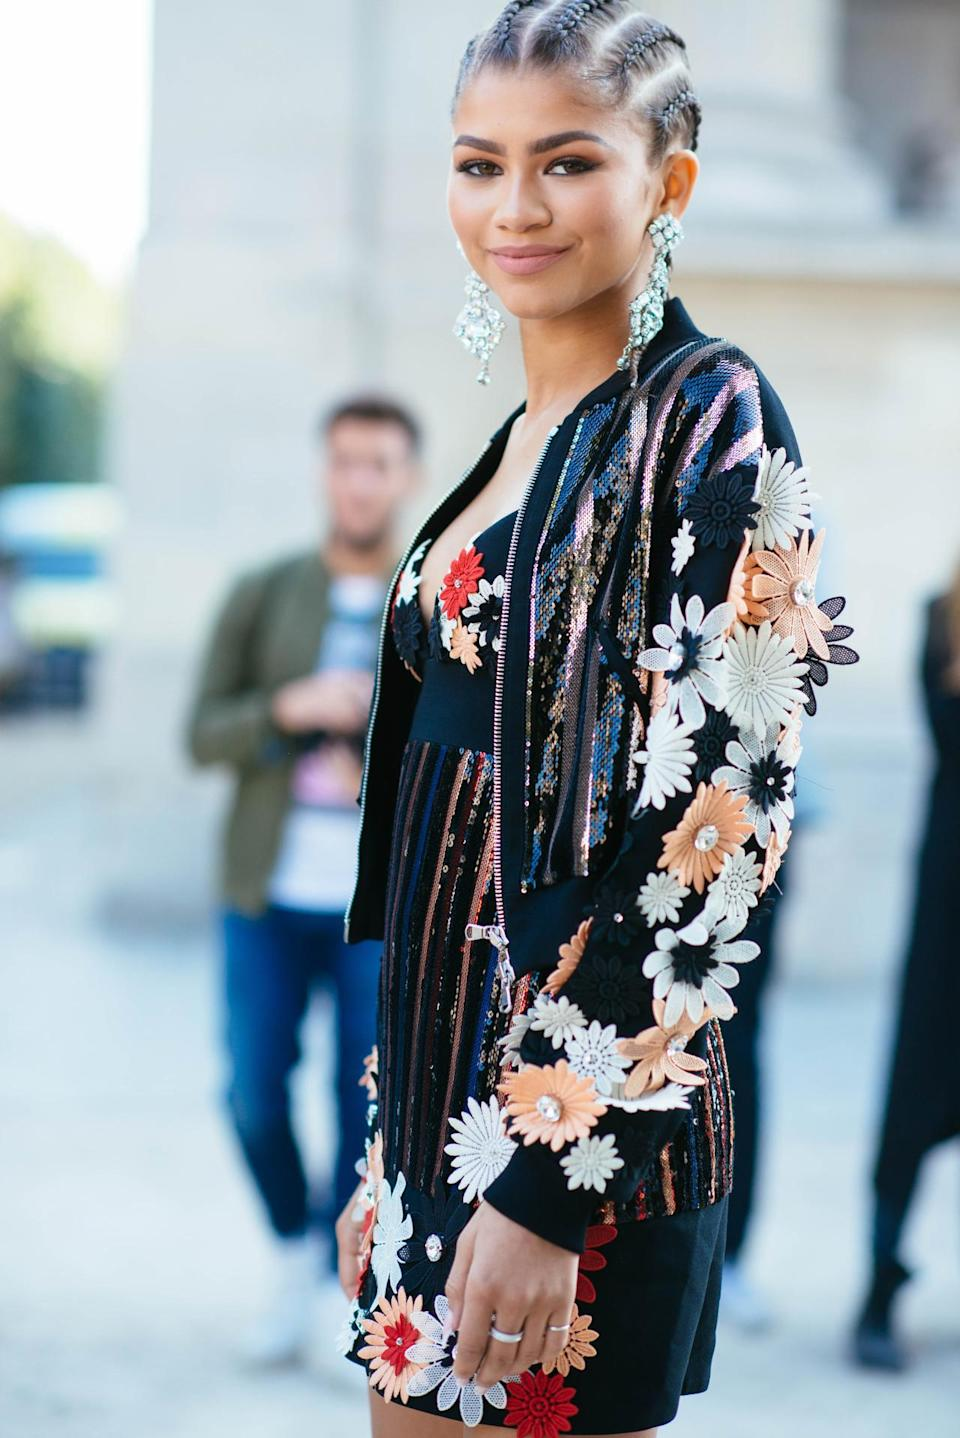 "<p>Attending Emanuel Ungaro's Spring 2016 fashion show, Zendaya paired a black dress covered in sequins and red, peach, pink, and white flowers blooming off it. She paired the mini with a matching bomber jacket made of the same elements. When she shared a pic of herself in this outfit, she captioned it cornrows and designer clothes. On her changing hairstyles, the <i>K.C. Undercover</i> star <a href=""https://instagram.com/p/8aeV2rpmBT/?taken-by=zendaya"" rel=""nofollow noopener"" target=""_blank"" data-ylk=""slk:wrote on Twitter"" class=""link rapid-noclick-resp"">wrote on Twitter</a>, ""A guy came up to me and was like, 'One show you have short hair, now you have braids, how?' I turned over my shoulder and said…magic."" </p><p><i>Photo: BFA</i></p>"